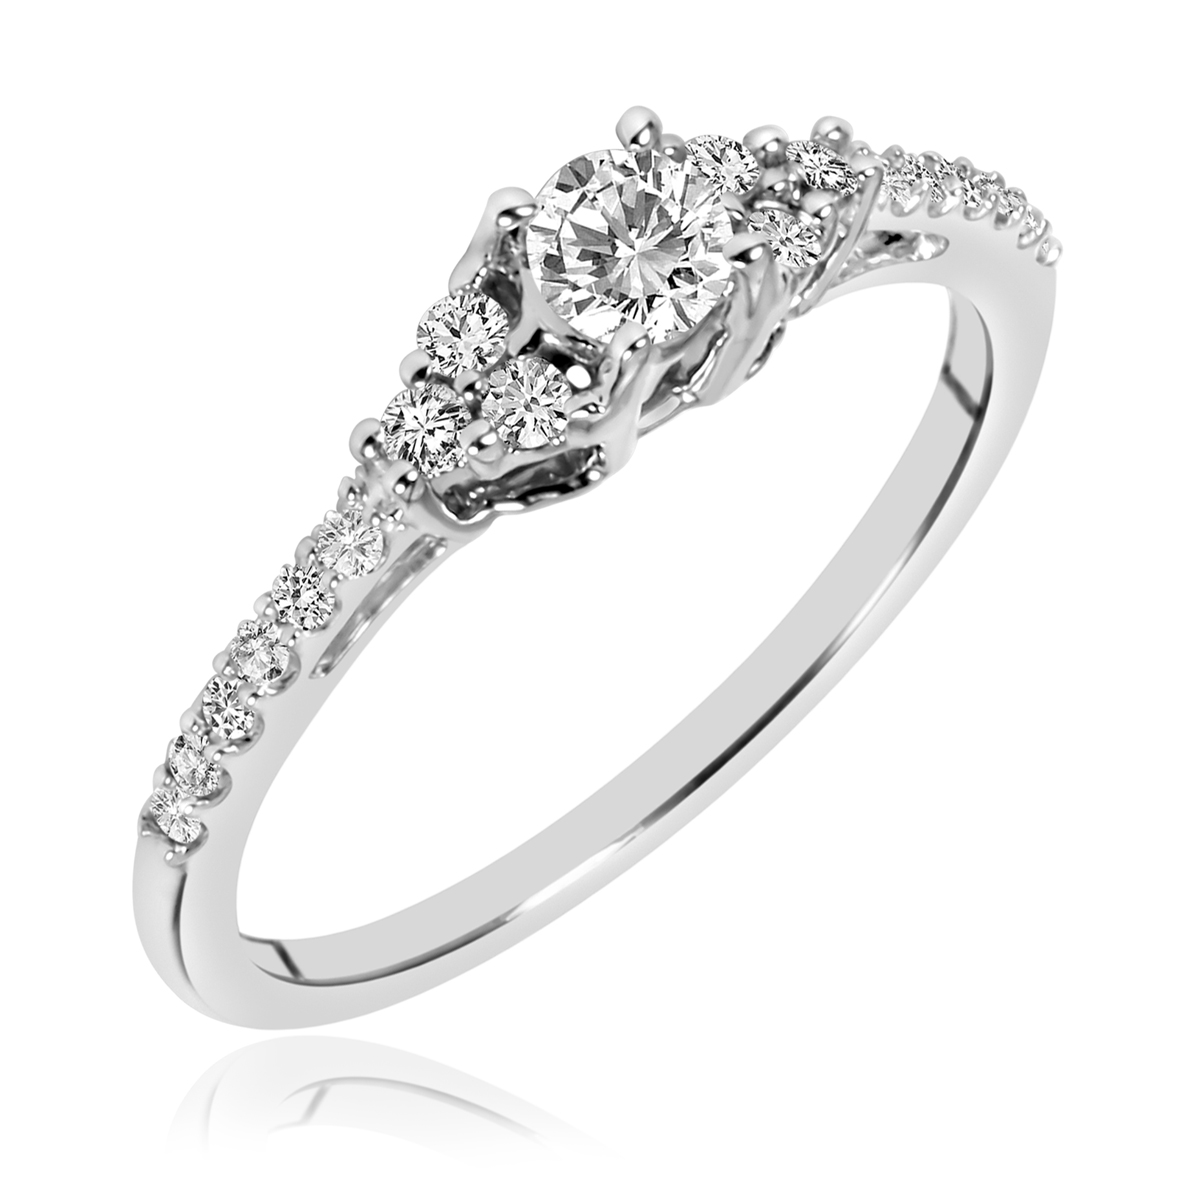 Faqs About Promise Rings My Trio Rings The Modern Jeweler For The Modern Couple